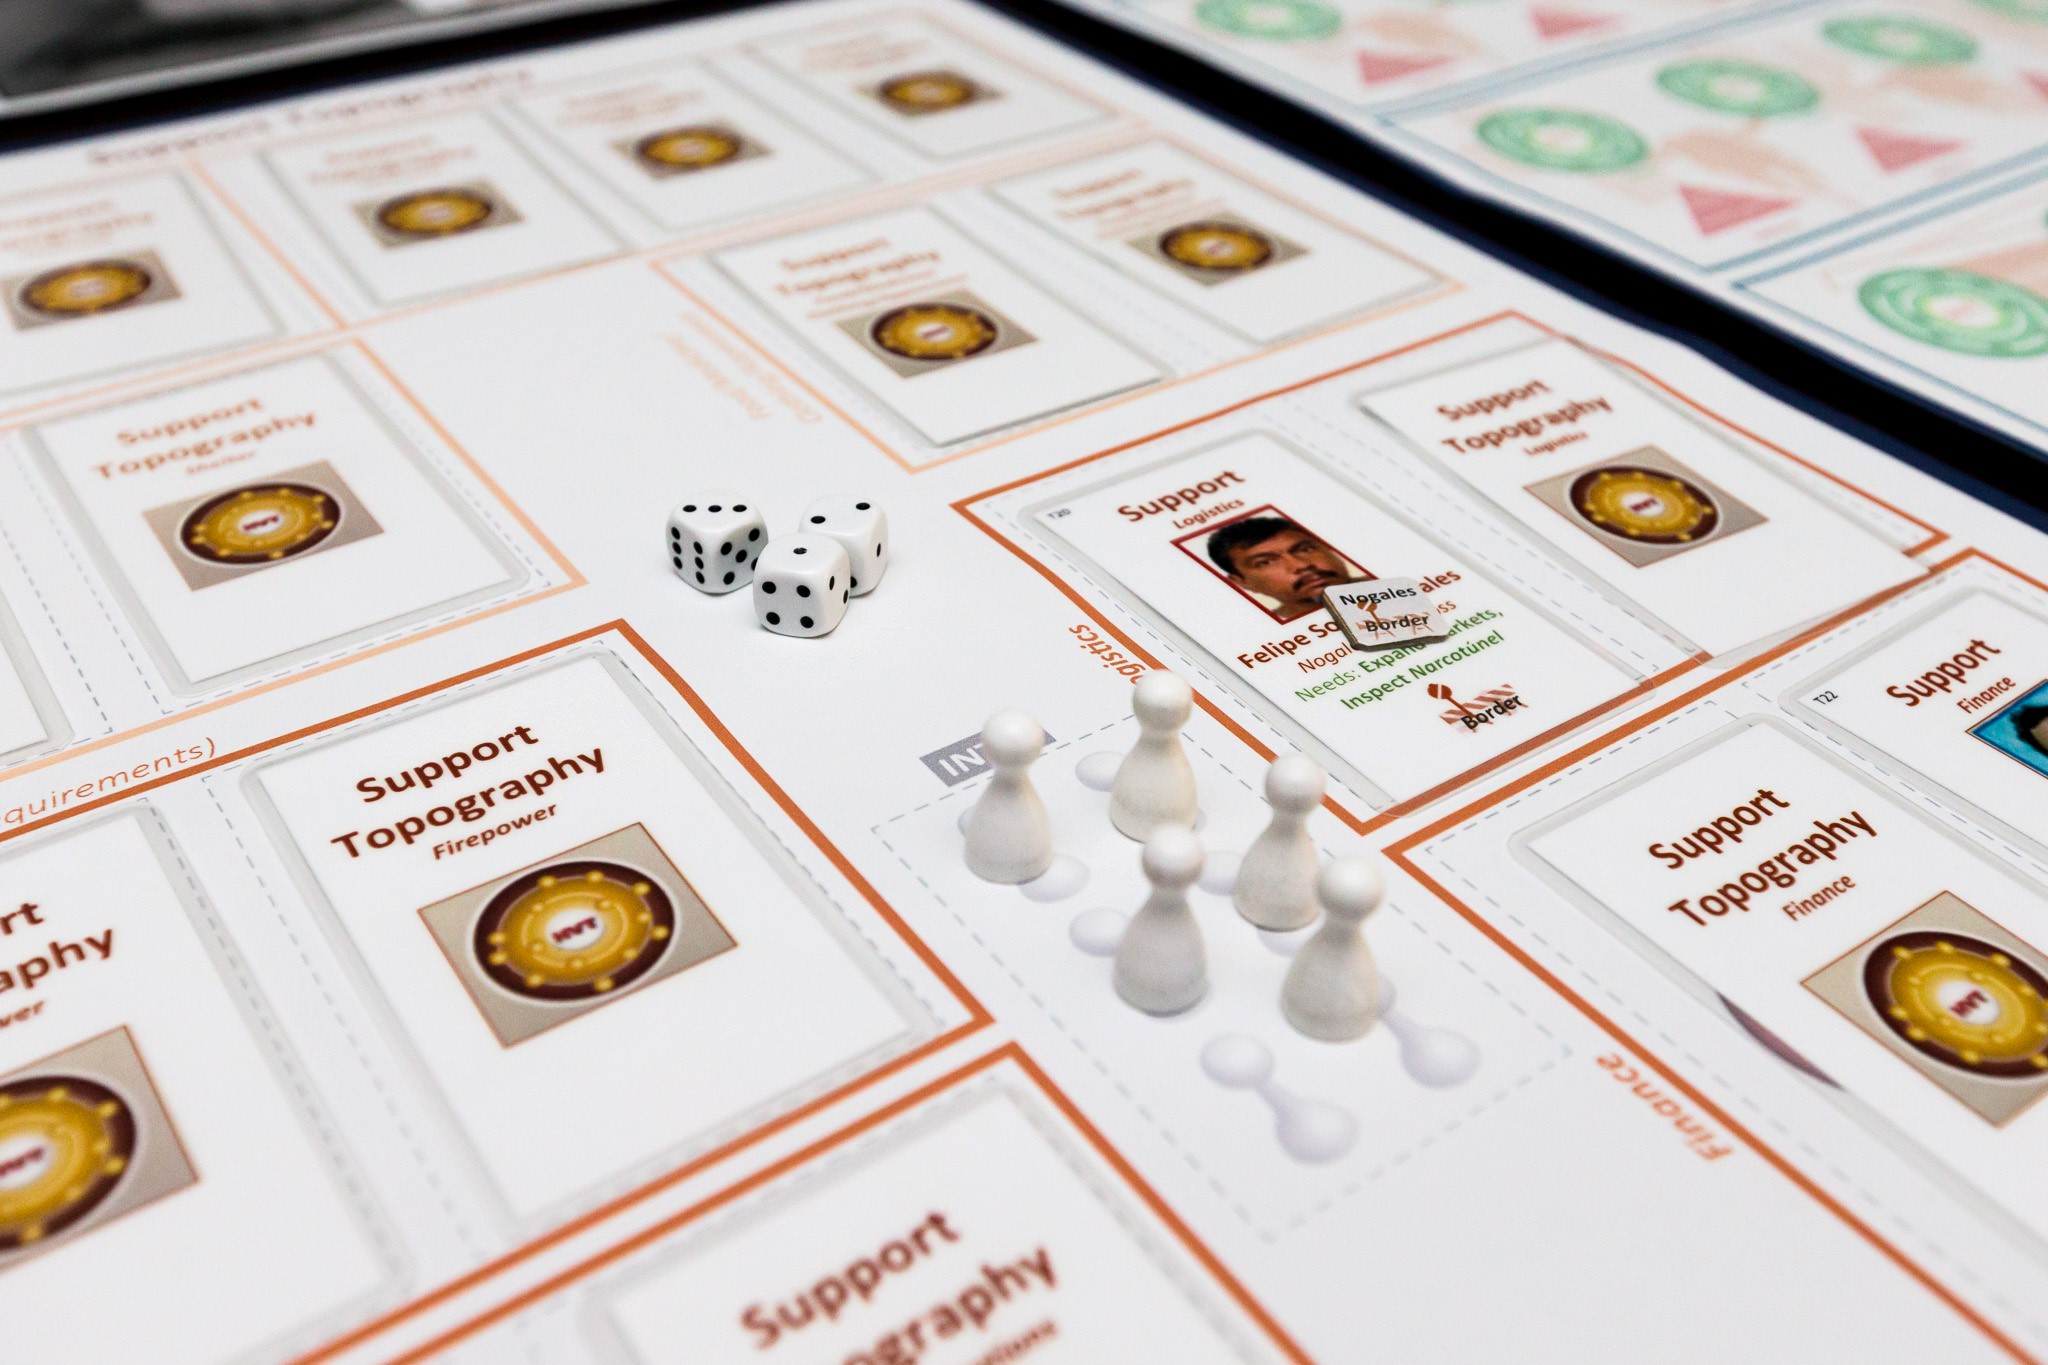 The art and craft of making board games for the CIA - Polygon